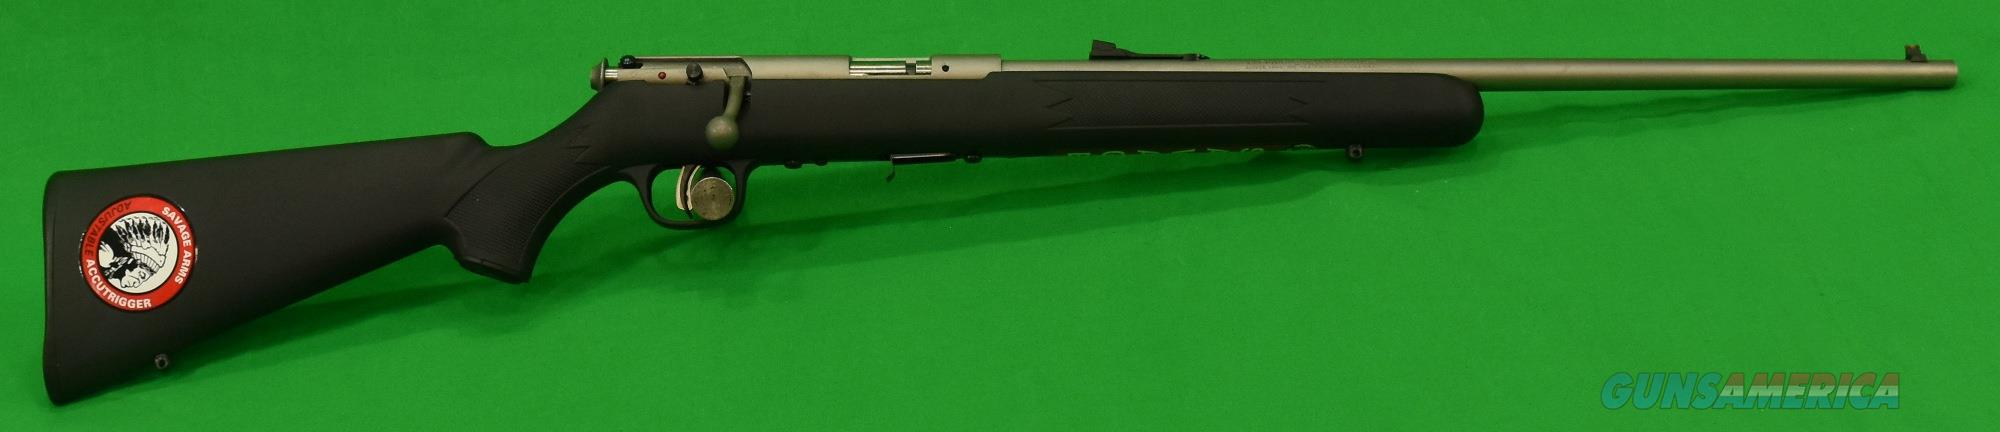 Mark II FSS Syn Black SS 22 LR 21In  24700  Guns > Rifles > Savage Rifles > Accutrigger Models > Sporting